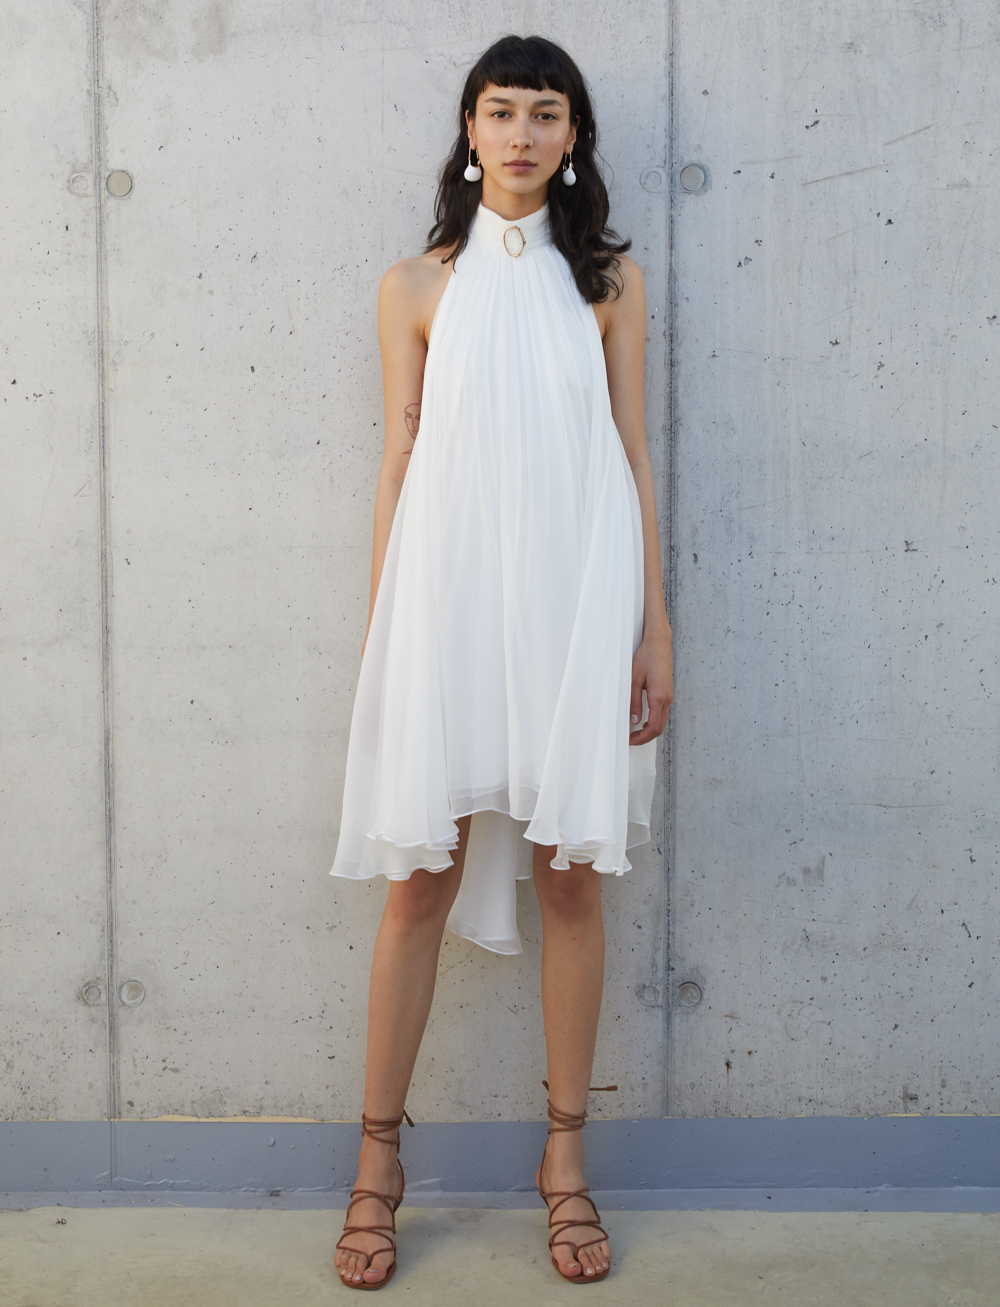 Wave Dress by Manurí on curated-crowd.com